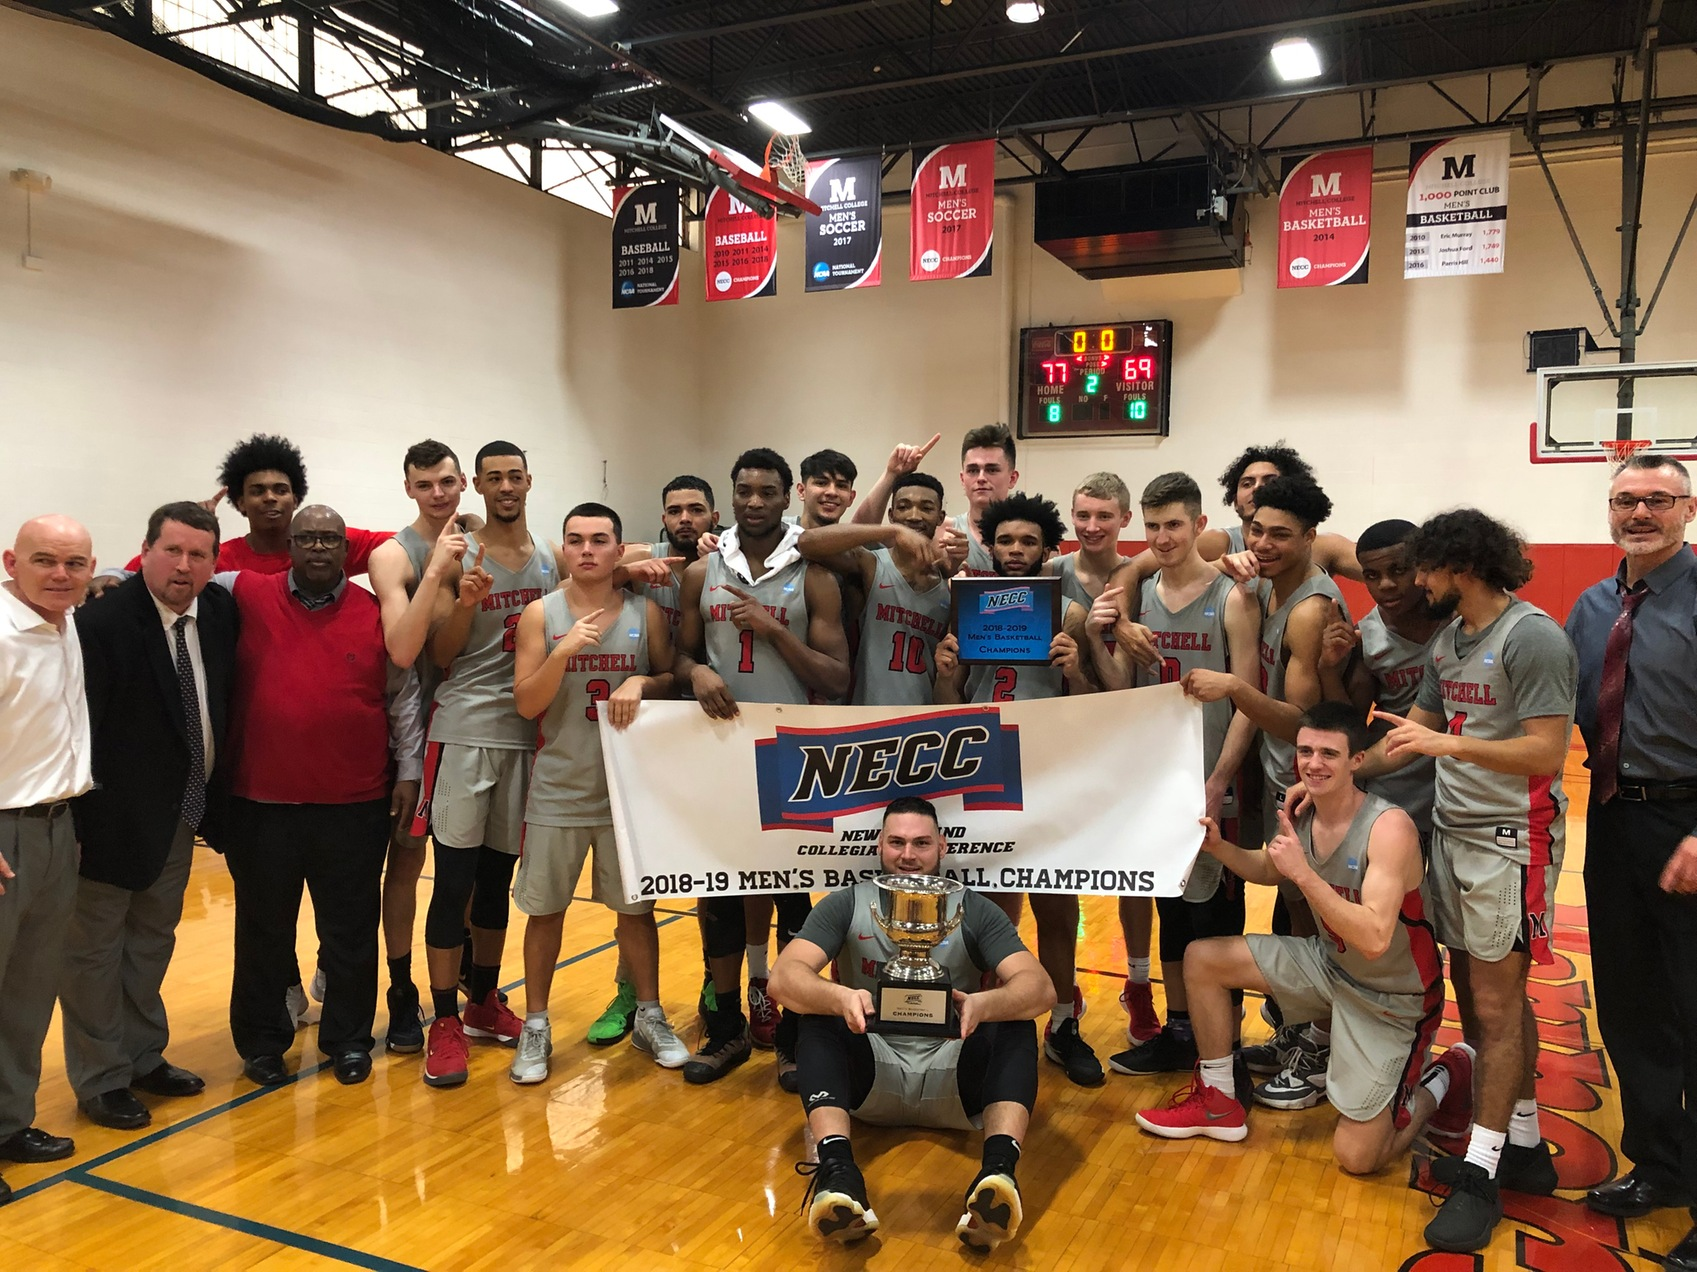 Mitchell Claims NECC Men's Basketball Title in OT Victory over Newbury